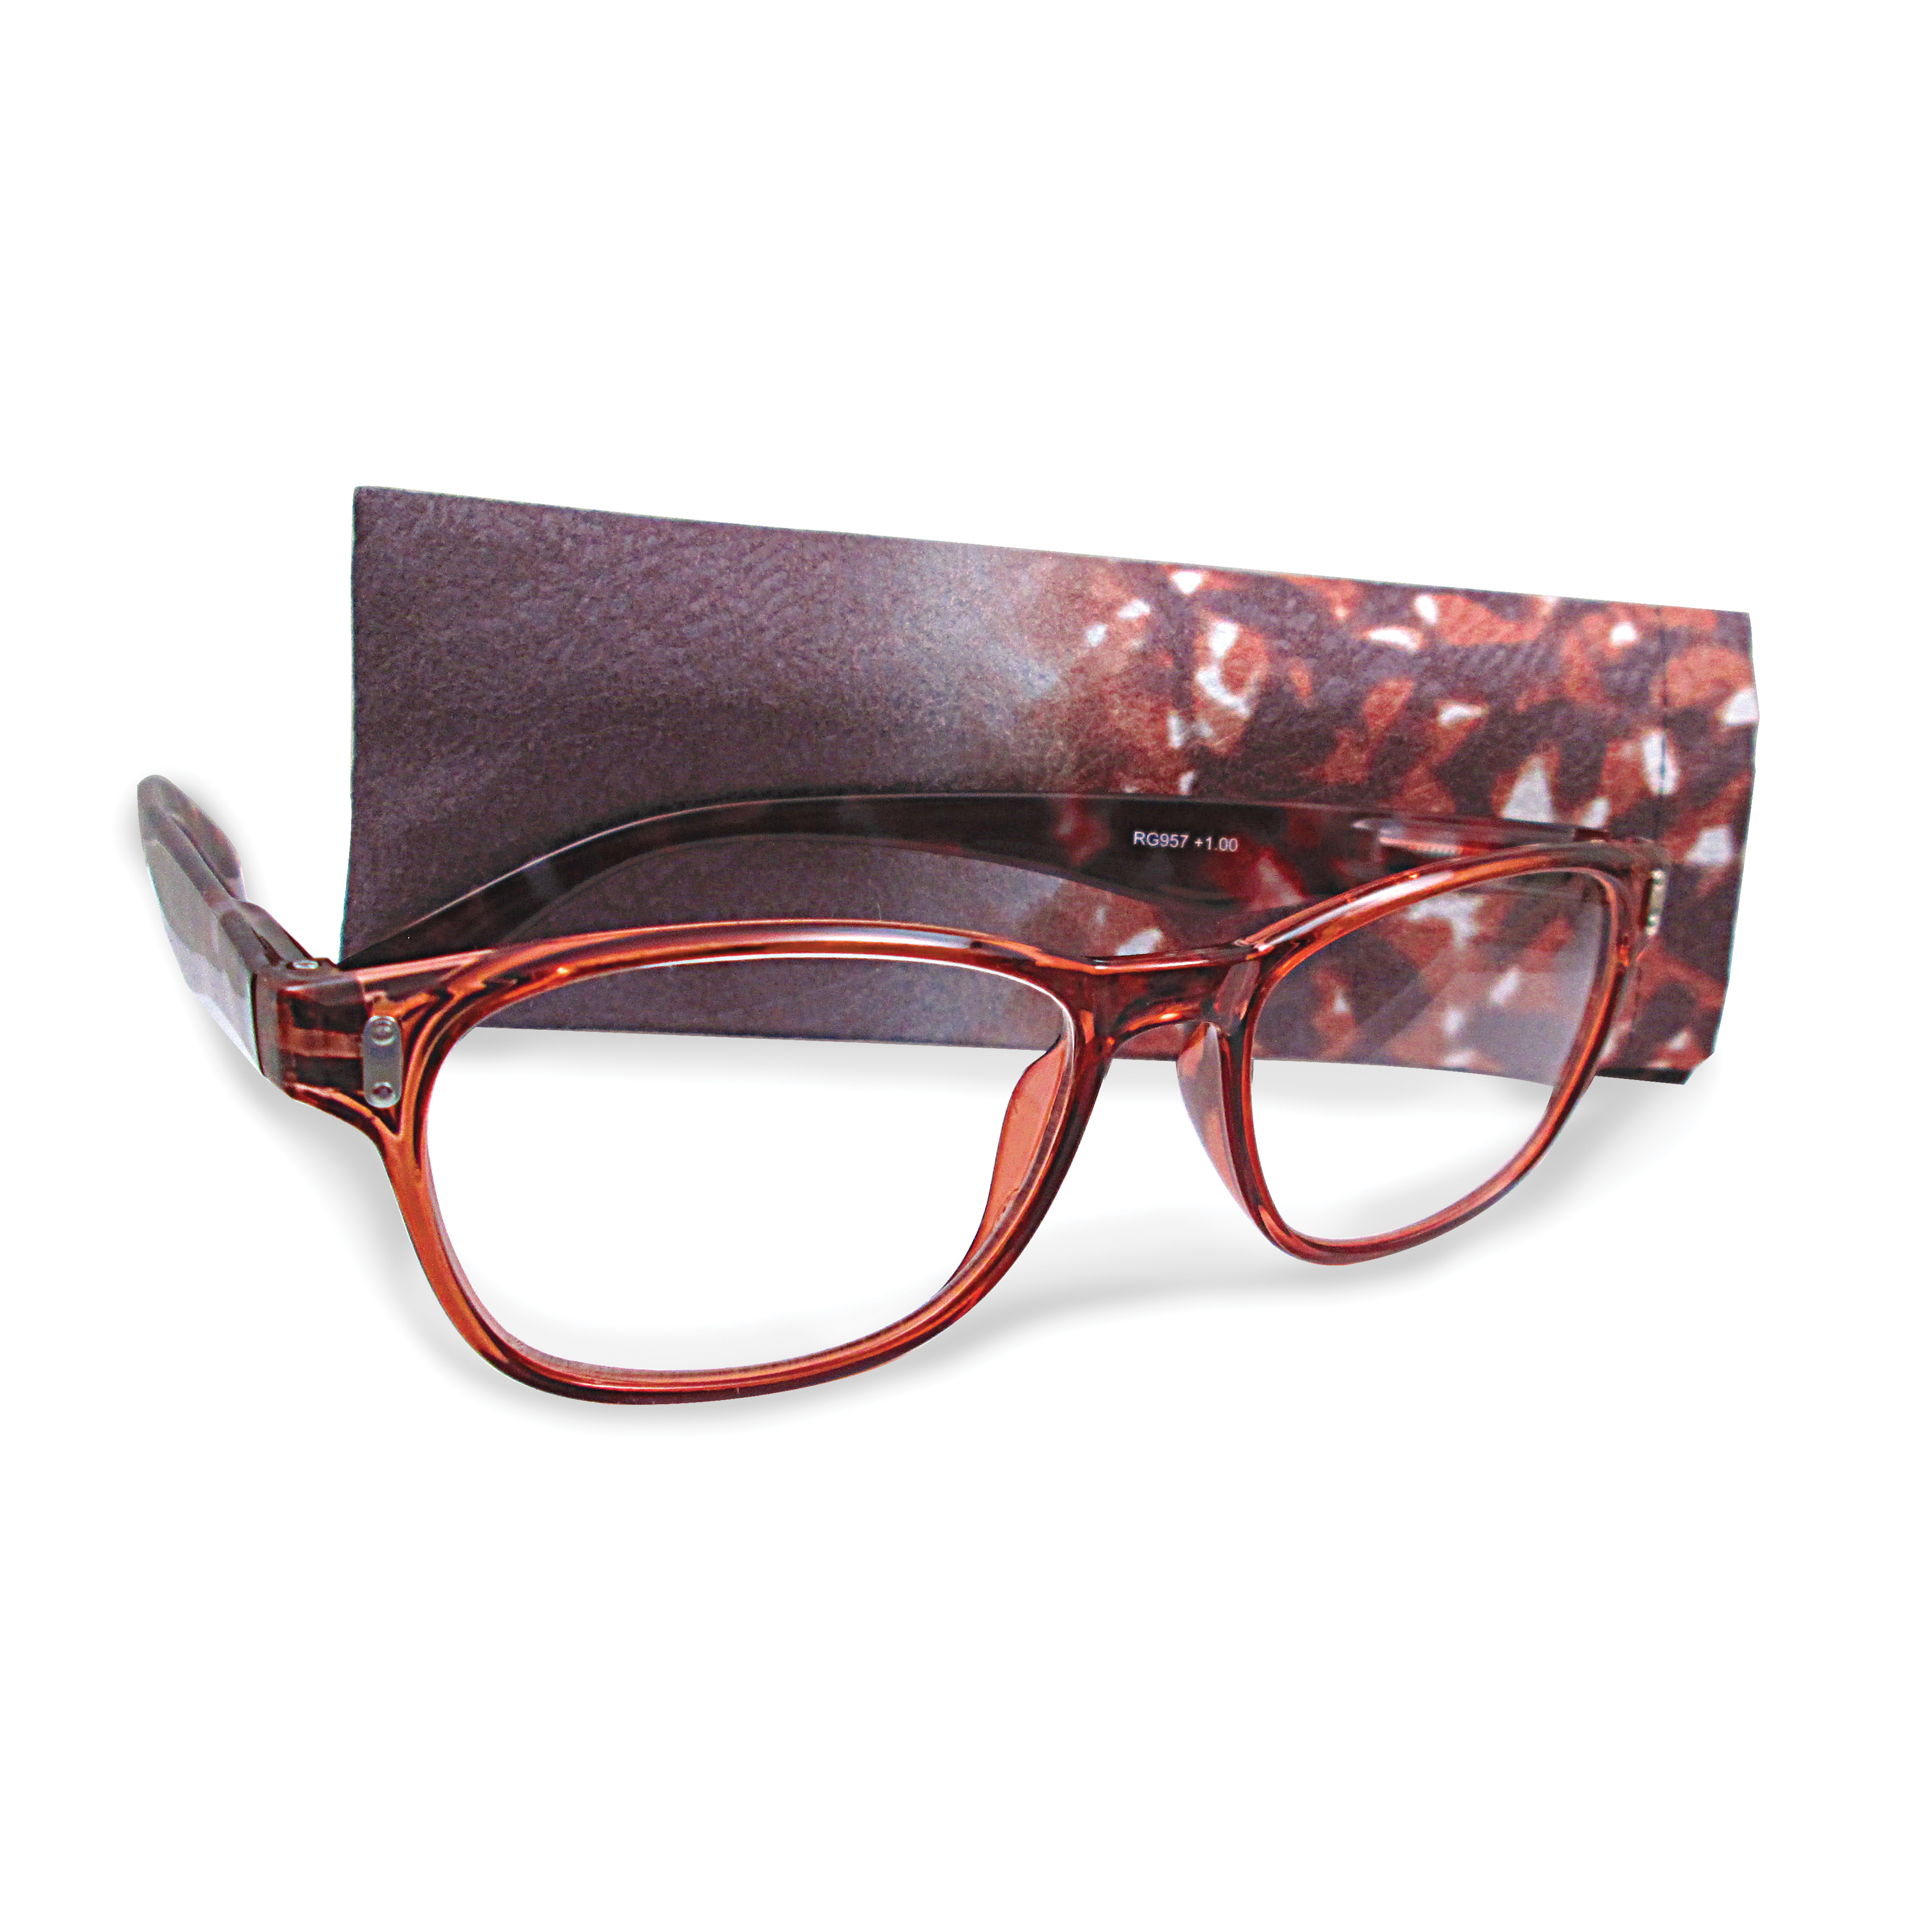 Brown +1.75 Magnification Reading Glasses